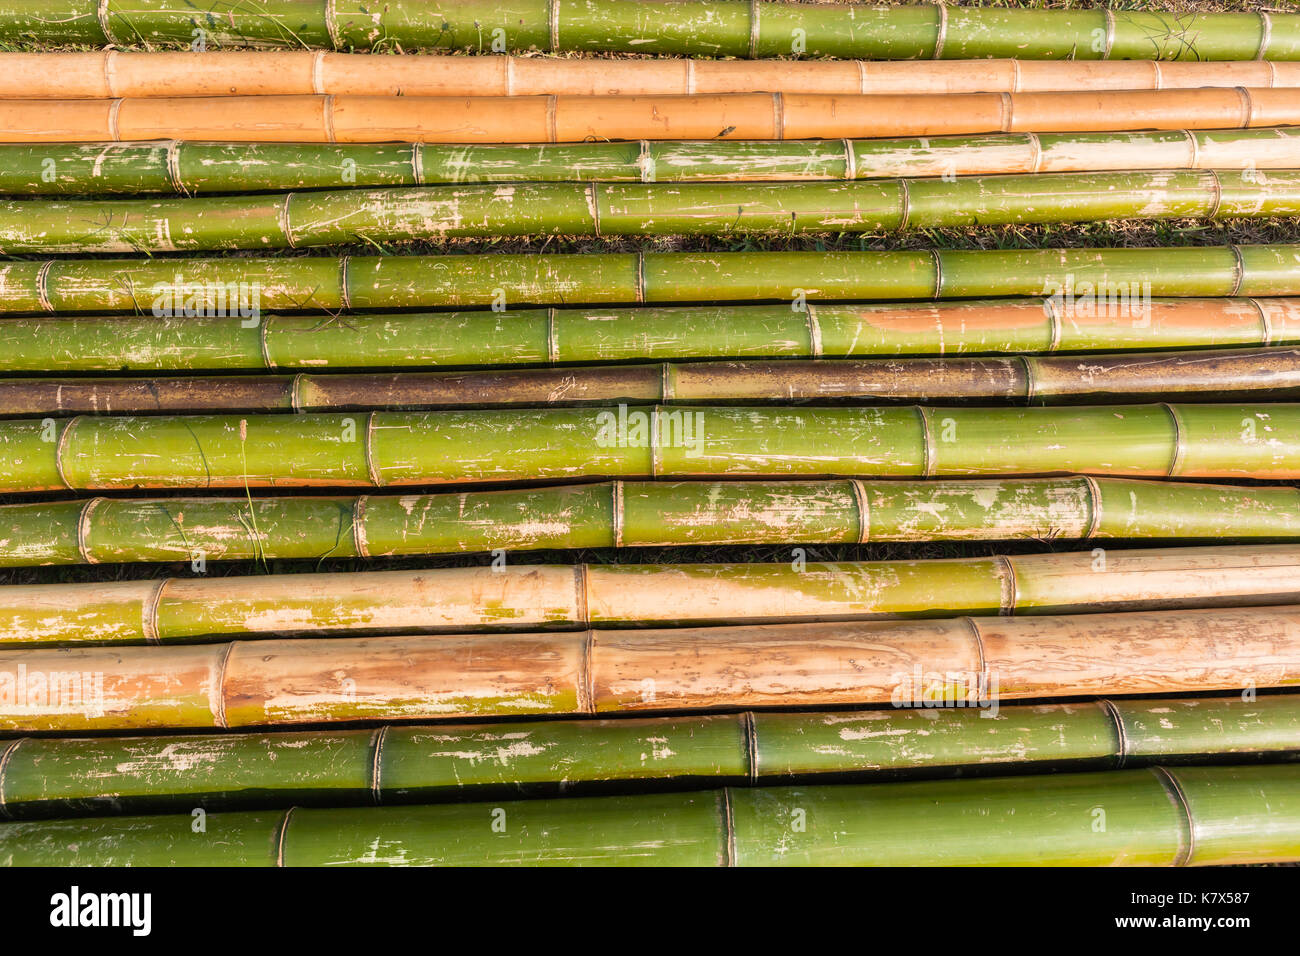 Bamboo poles lengths  closeup stacked together on bround. - Stock Image